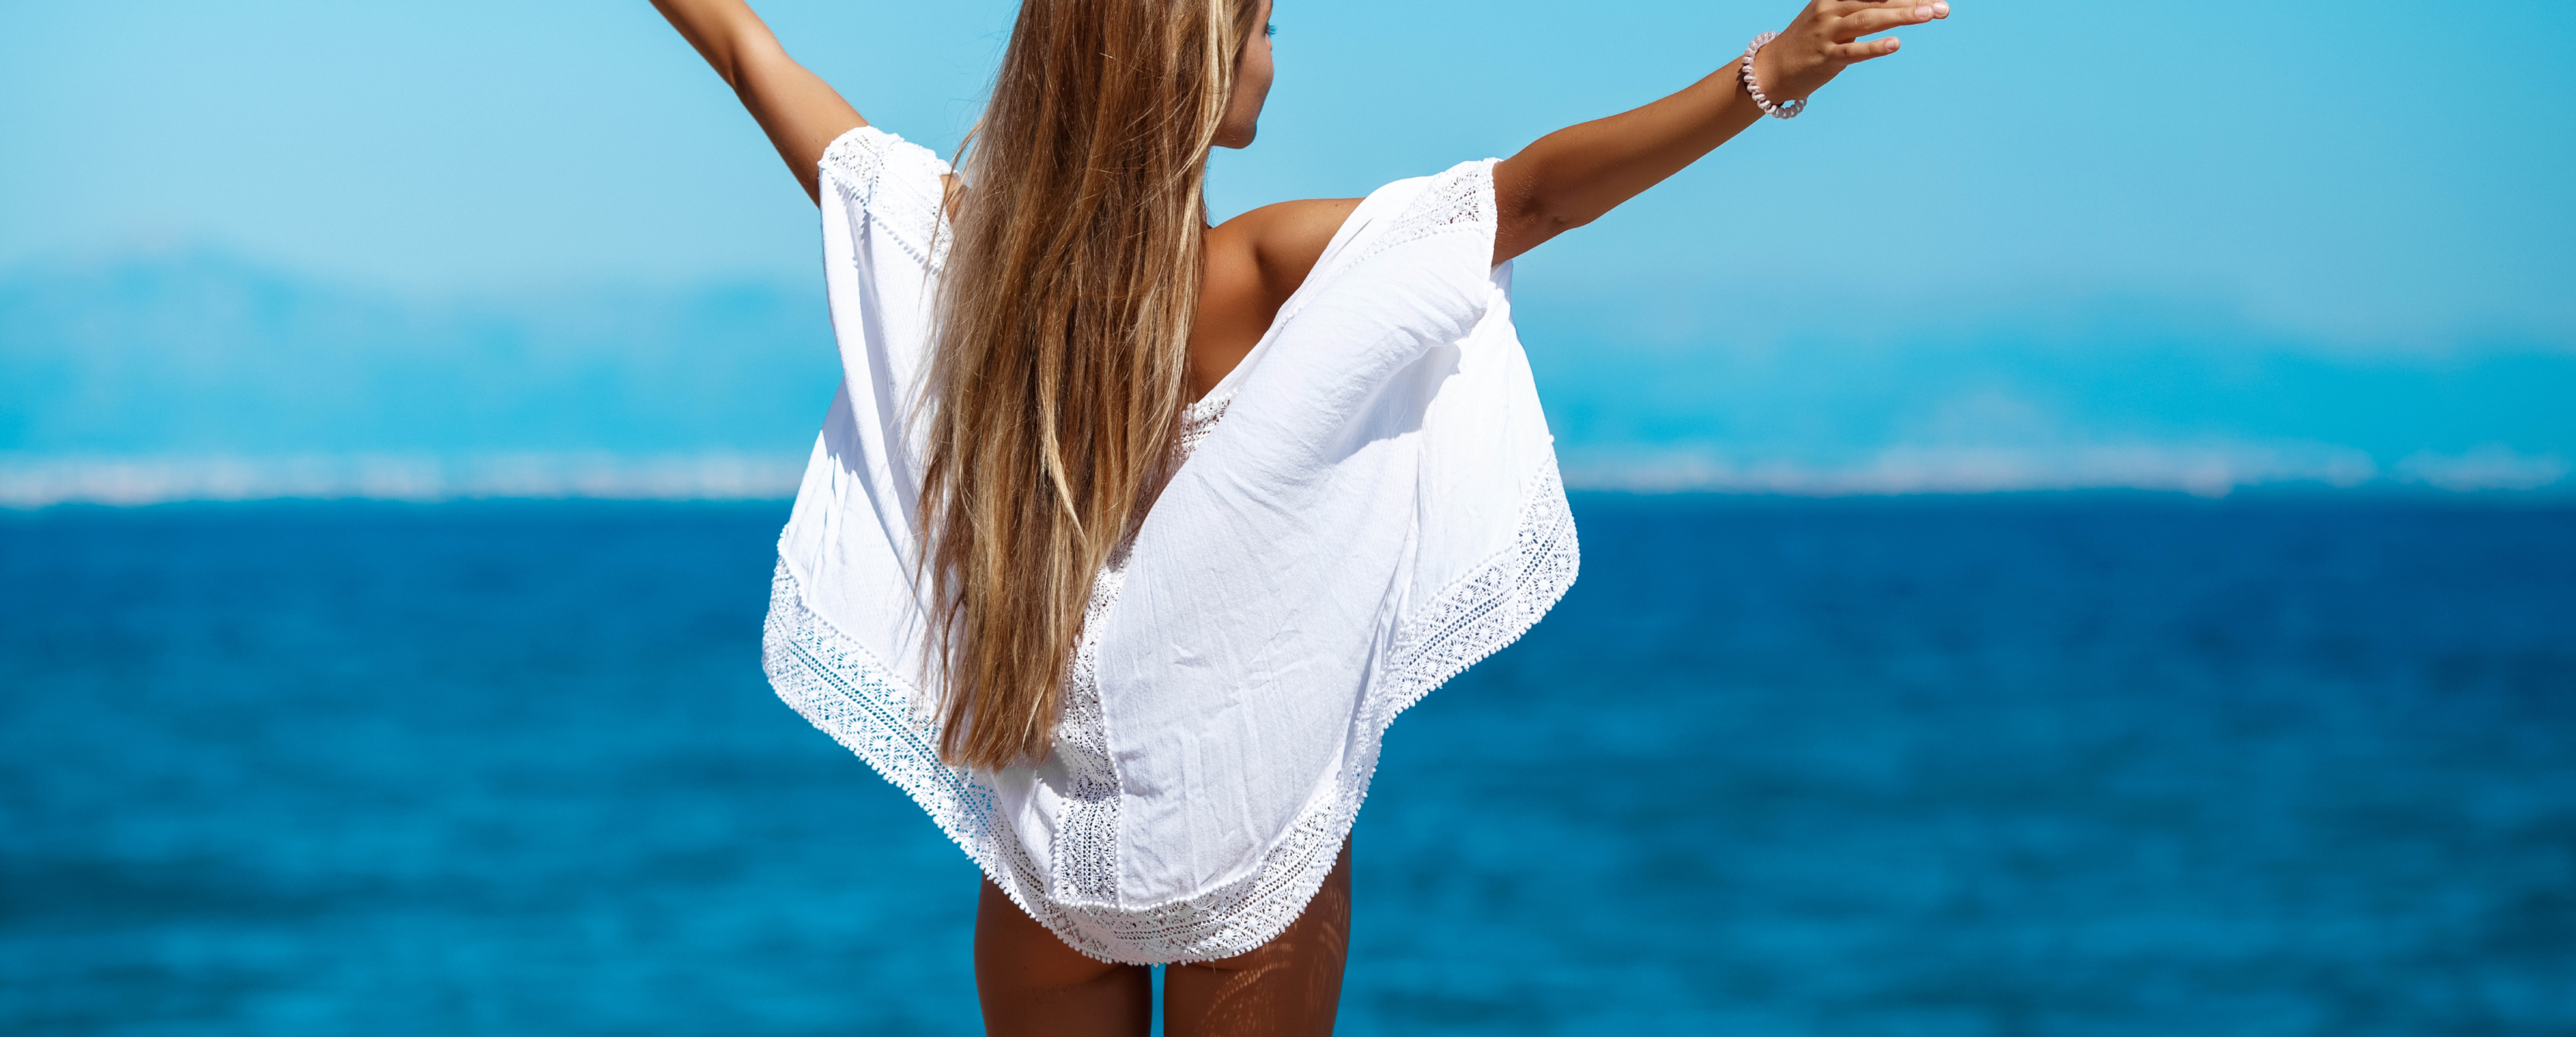 Summer Kiss Self Tanning Feature Banner Image